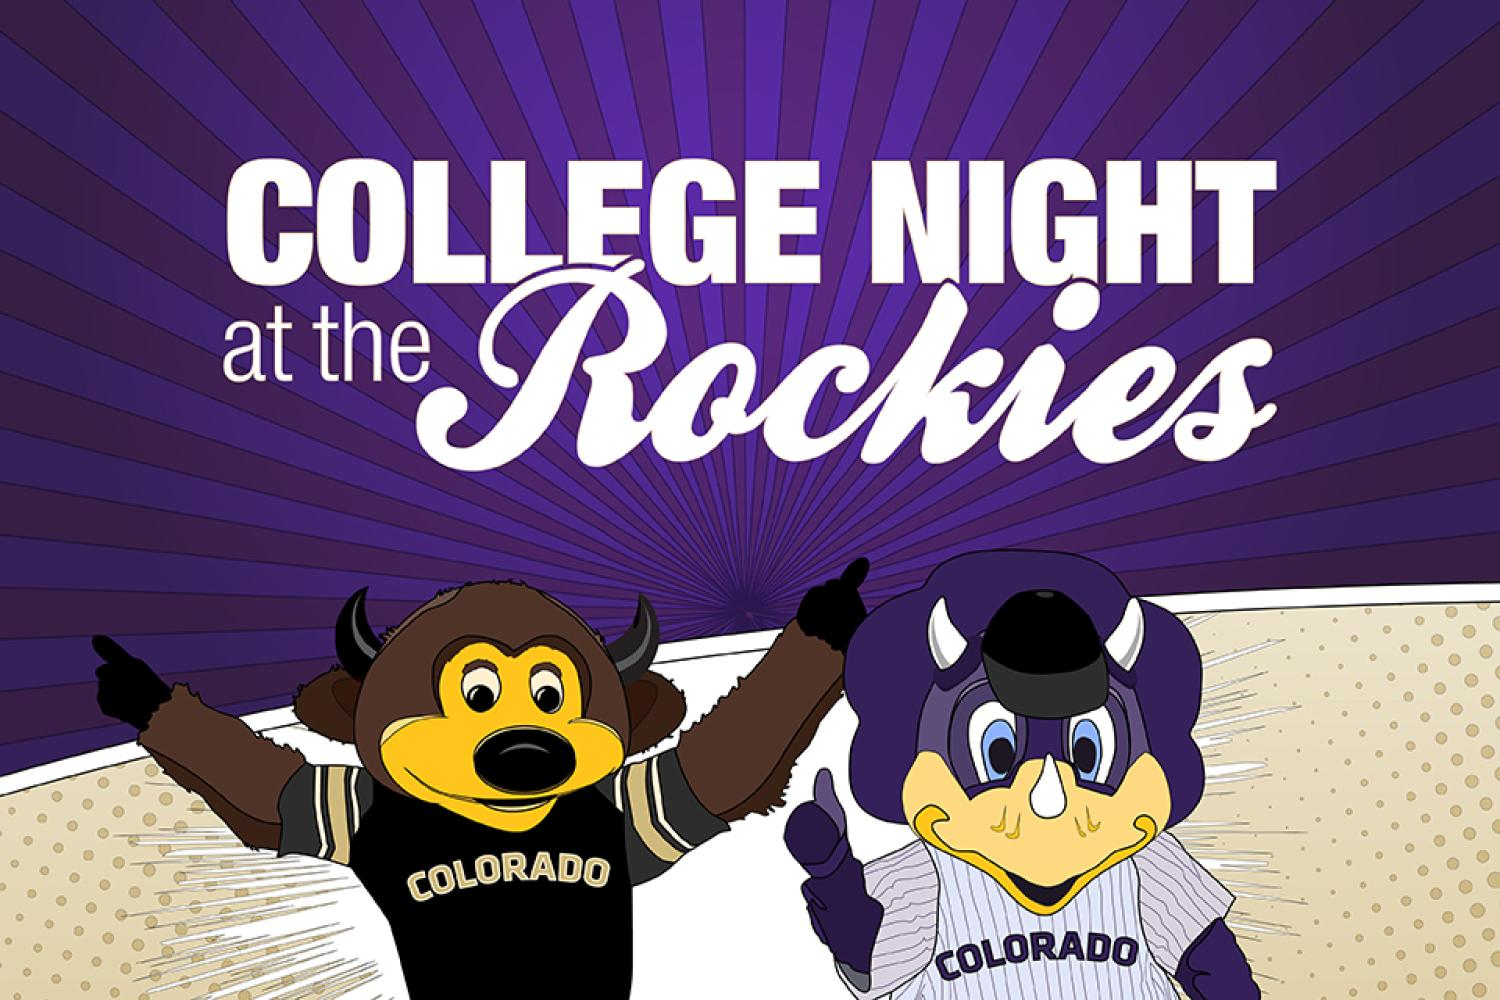 college night at the rockies